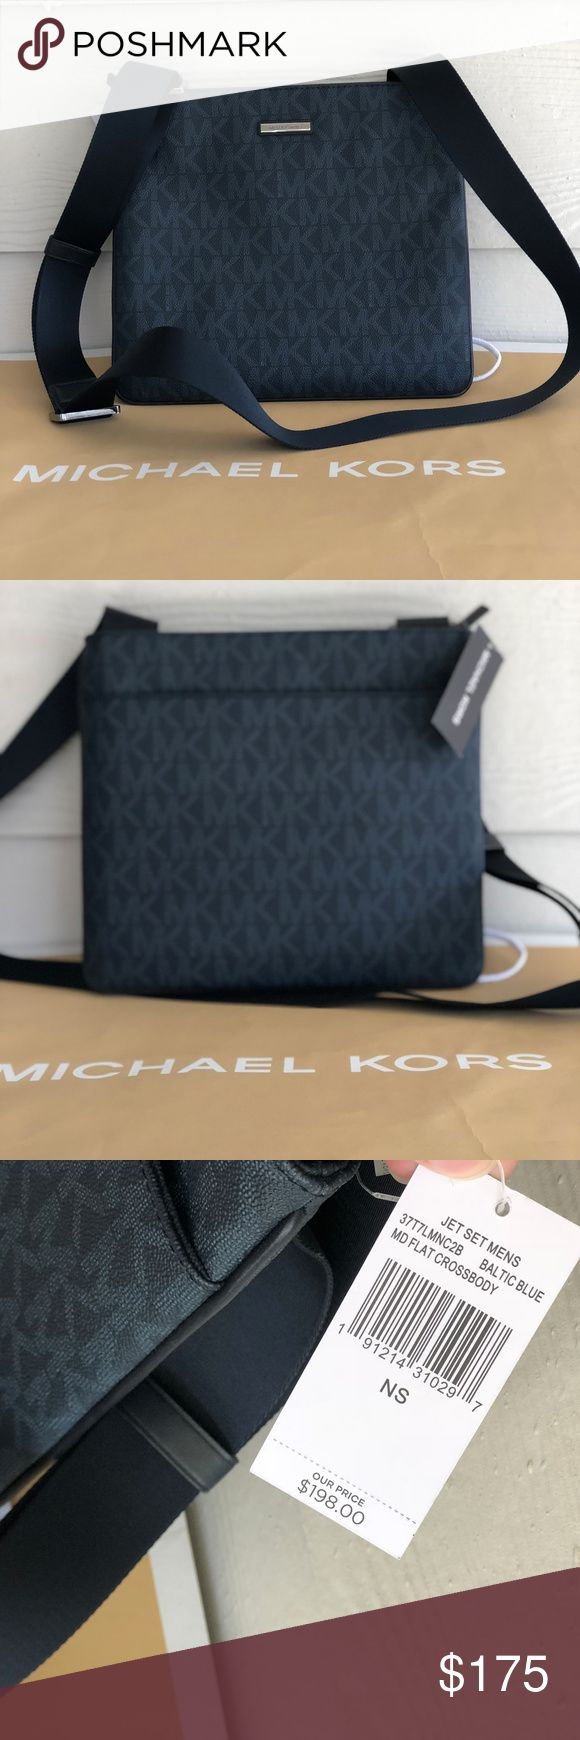 Michael Kors Mens Jet Set Flat Blue Crossbody NWT 100% Authentic Michael Kors Men's Jet Set Medium Flat Cross body Baltic Blue NWT!  MRSP:  Jet set cross body: 198$+tax  Compact Style  Large Secure Compartment   Zip Locked  Padded Tablet Sleeve  Signature Branded  Adjustable Shoulder Strap  Secure Zipped Pocket Inside  Metal Branded Plaque To Front Michael Kors Bags Messenger Bags